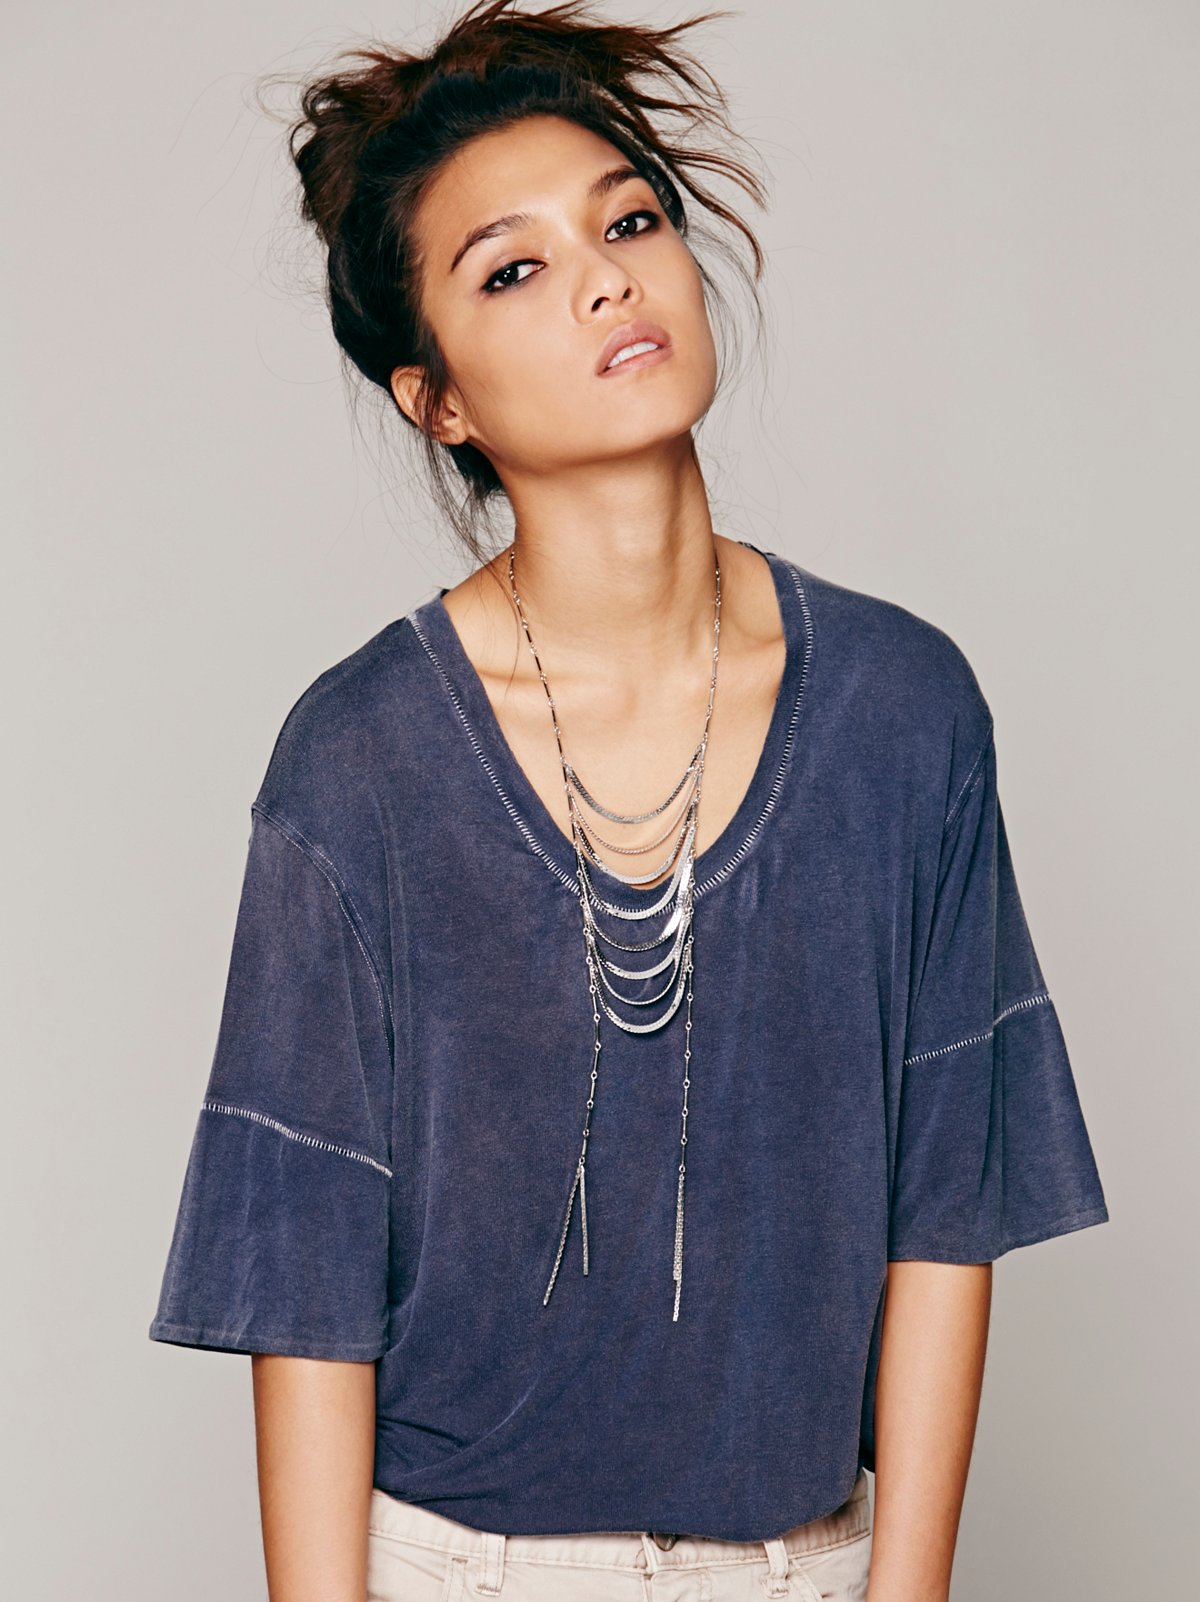 Cascade Layering Necklace